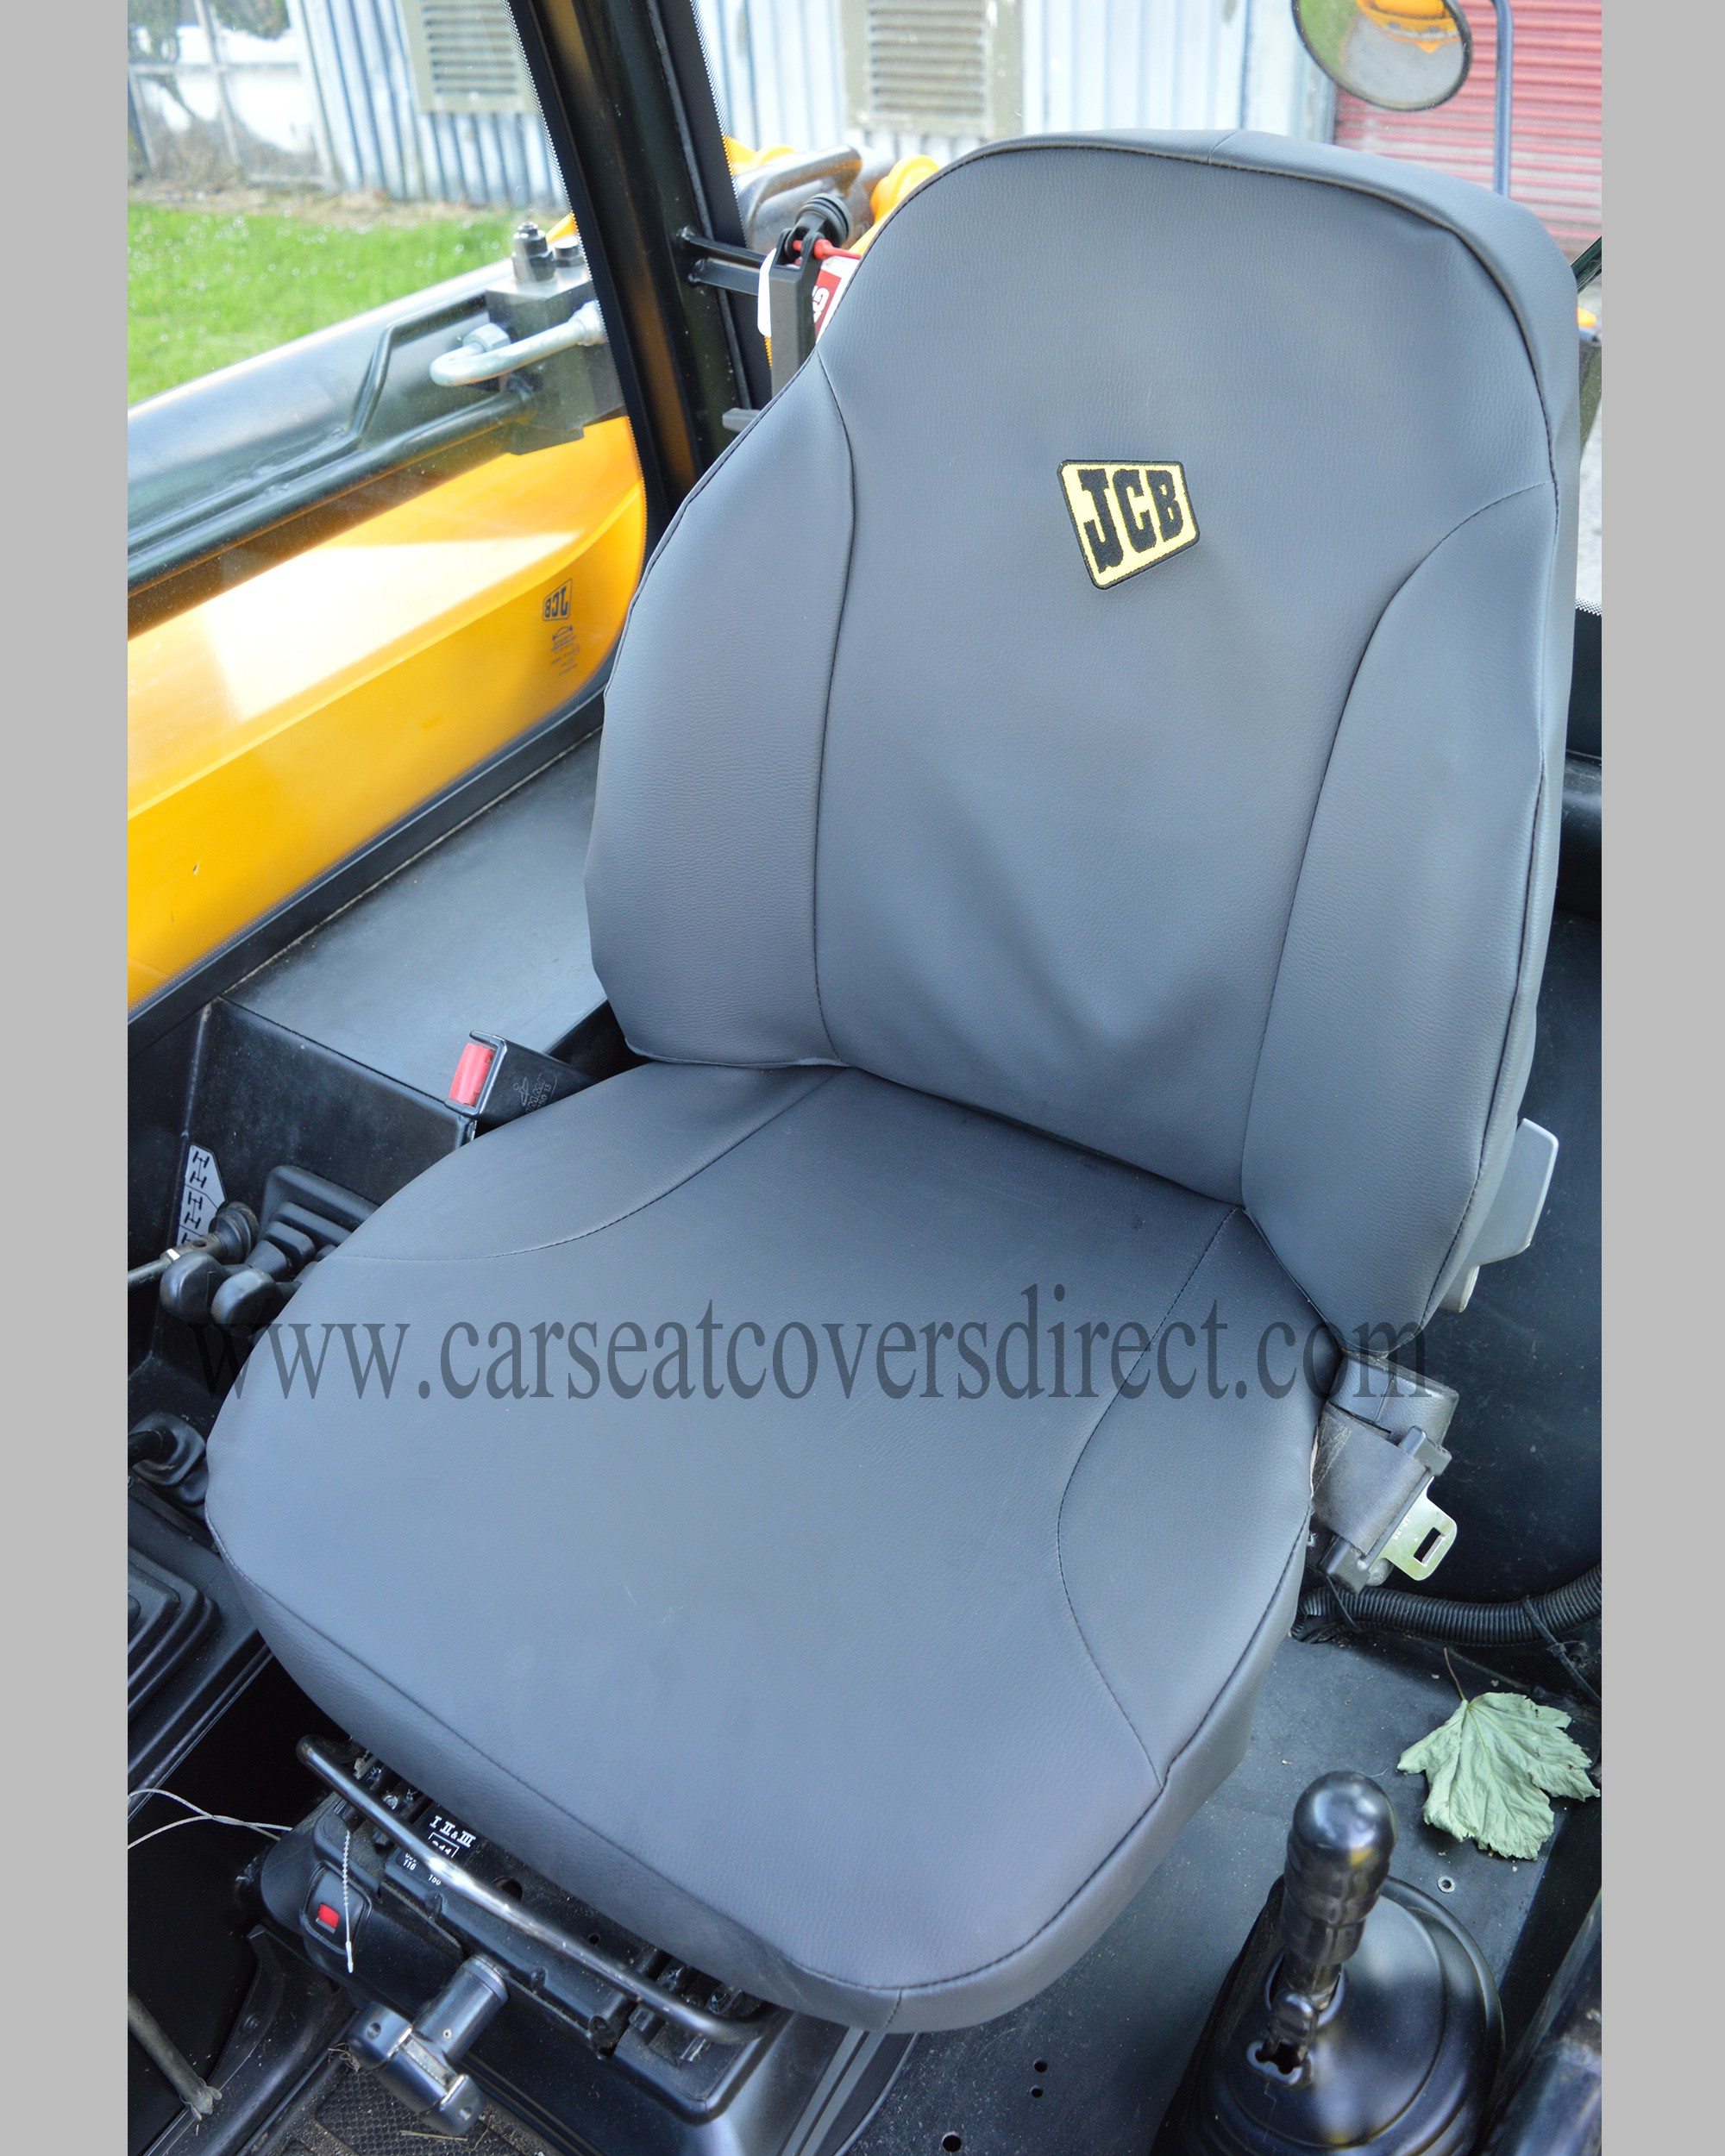 JCB 535-140 telescopic seat with grey leatherette seat cover